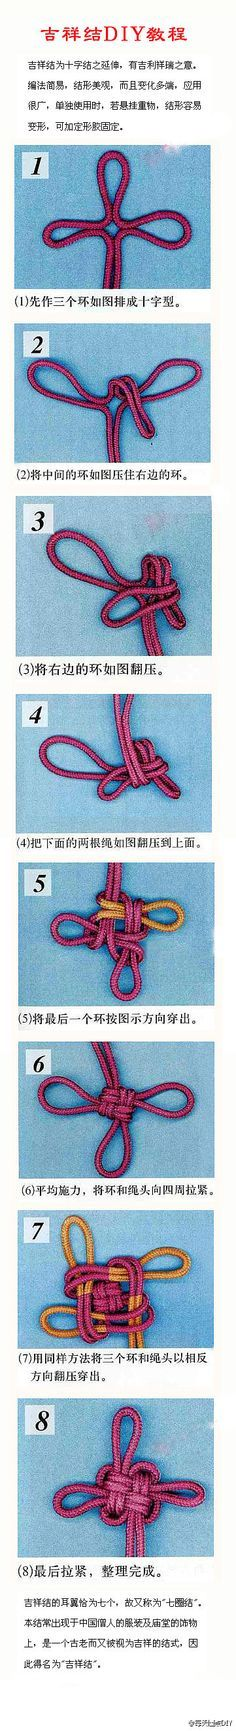 Chinese knot tutorial step-by-step pictures instructions in Chinese Macrame Knots, Micro Macrame, Beaded Beads, Knot Cushion, Bordados E Cia, Paracord Knots, Jewelry Knots, Jewellery, Paracord Projects